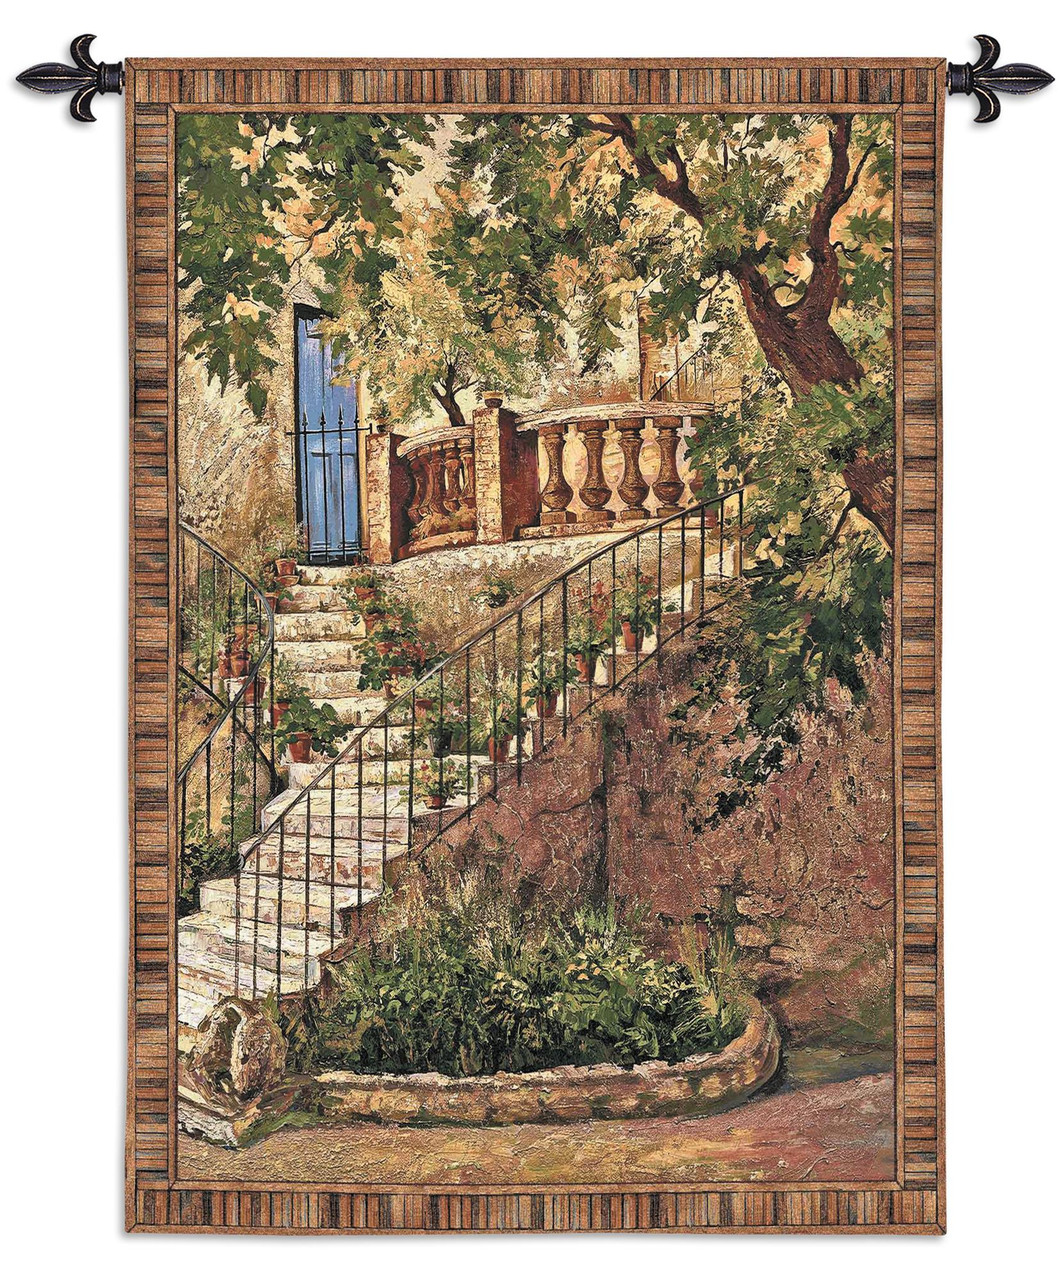 Tuscan Villa I By Roger Duvall Woven Tapestry Wall Art Hanging Rustic Italian Steps With Foliage 100 Cotton Usa Size 53x40